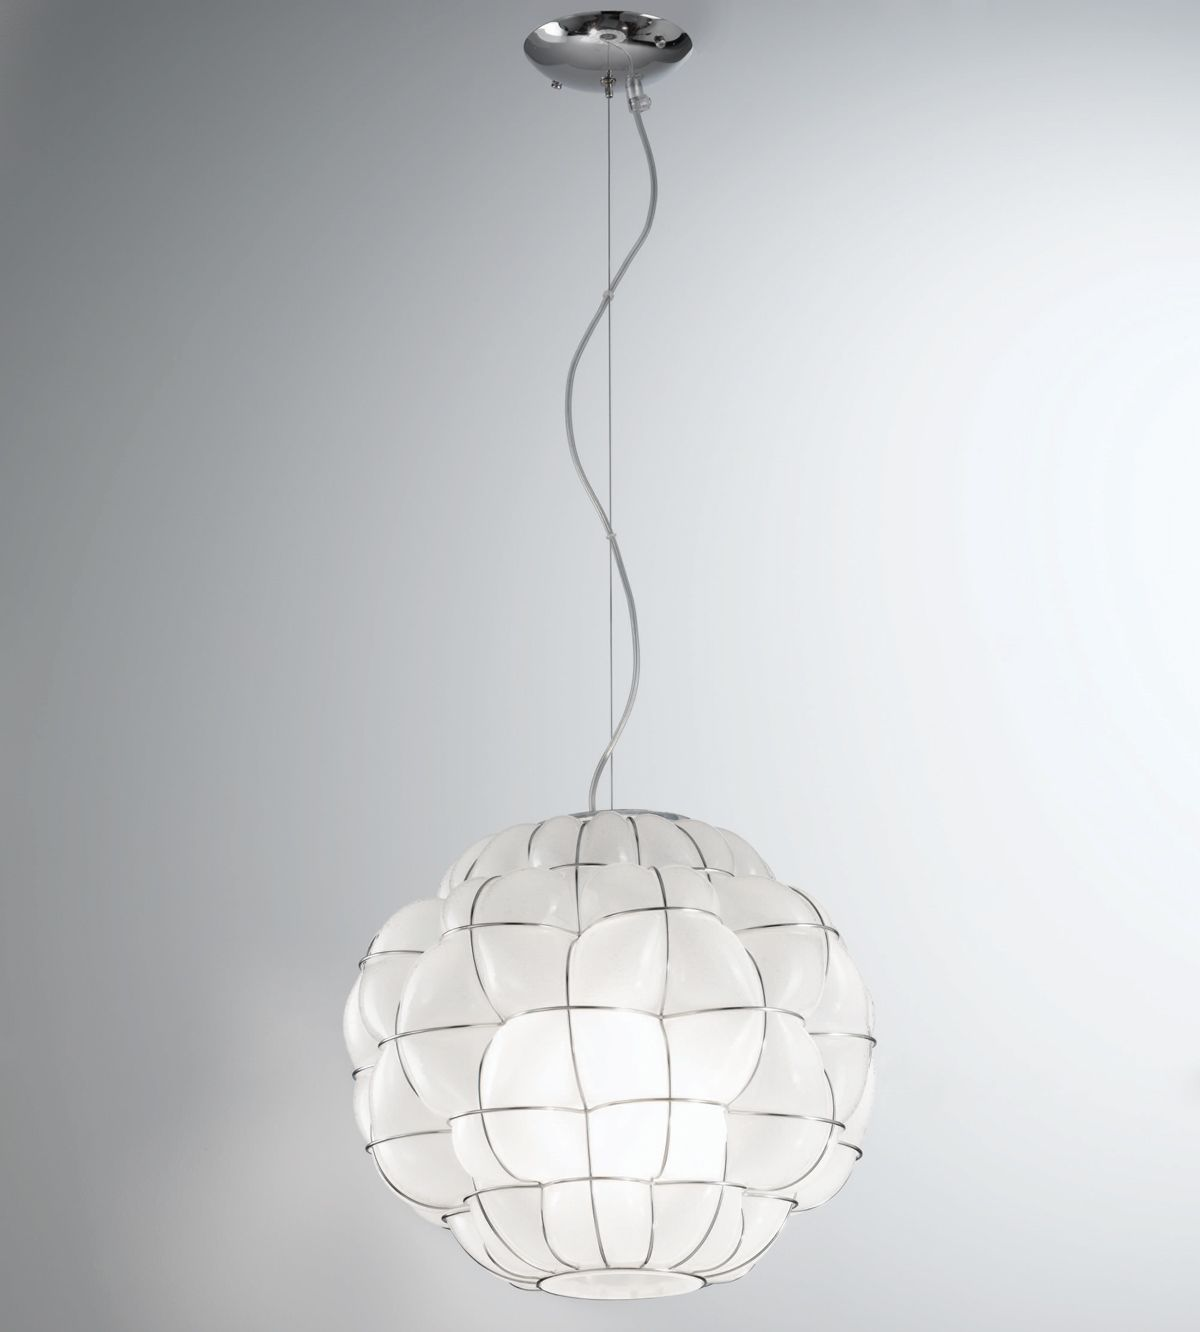 pouff lampadedesign inspiration lamp lampara glass venice